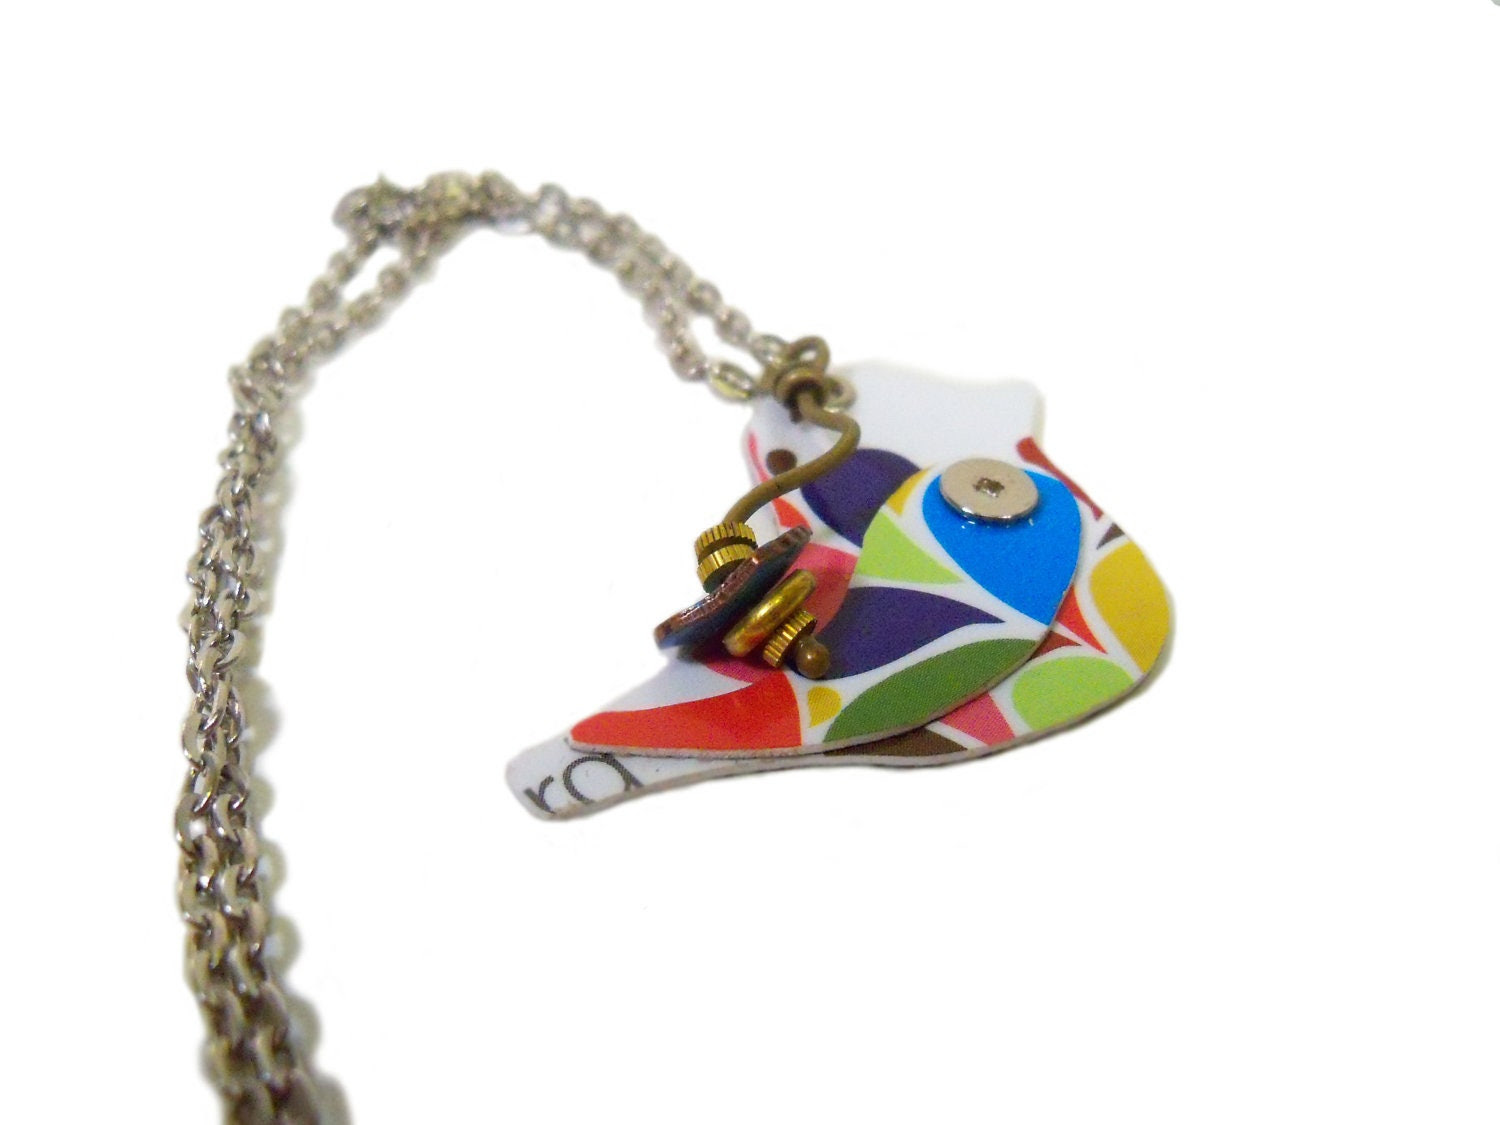 Gift Card Retro Bird Necklace, Recycled Jewelry, Upcycled Eco Friendly - ThePlatform